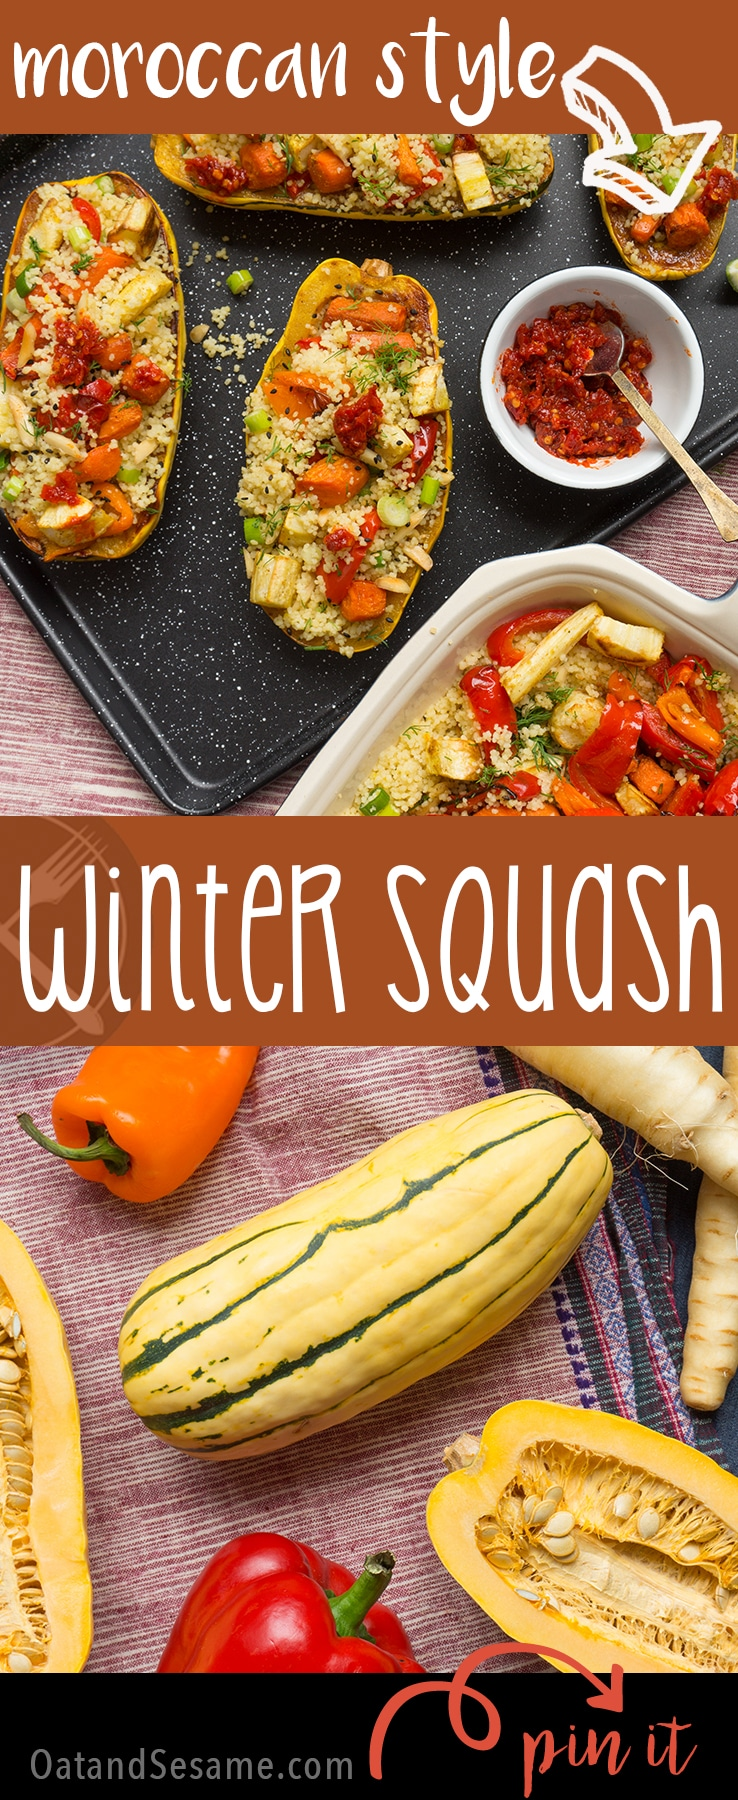 Savory Moroccan spices + Creamy Labneh top this Moroccan Squash with Vegetable Almond Pilaf   #VEGETARIAN   #MOROCCAN   #HARISSA   #Recipes at OatandSesame.com